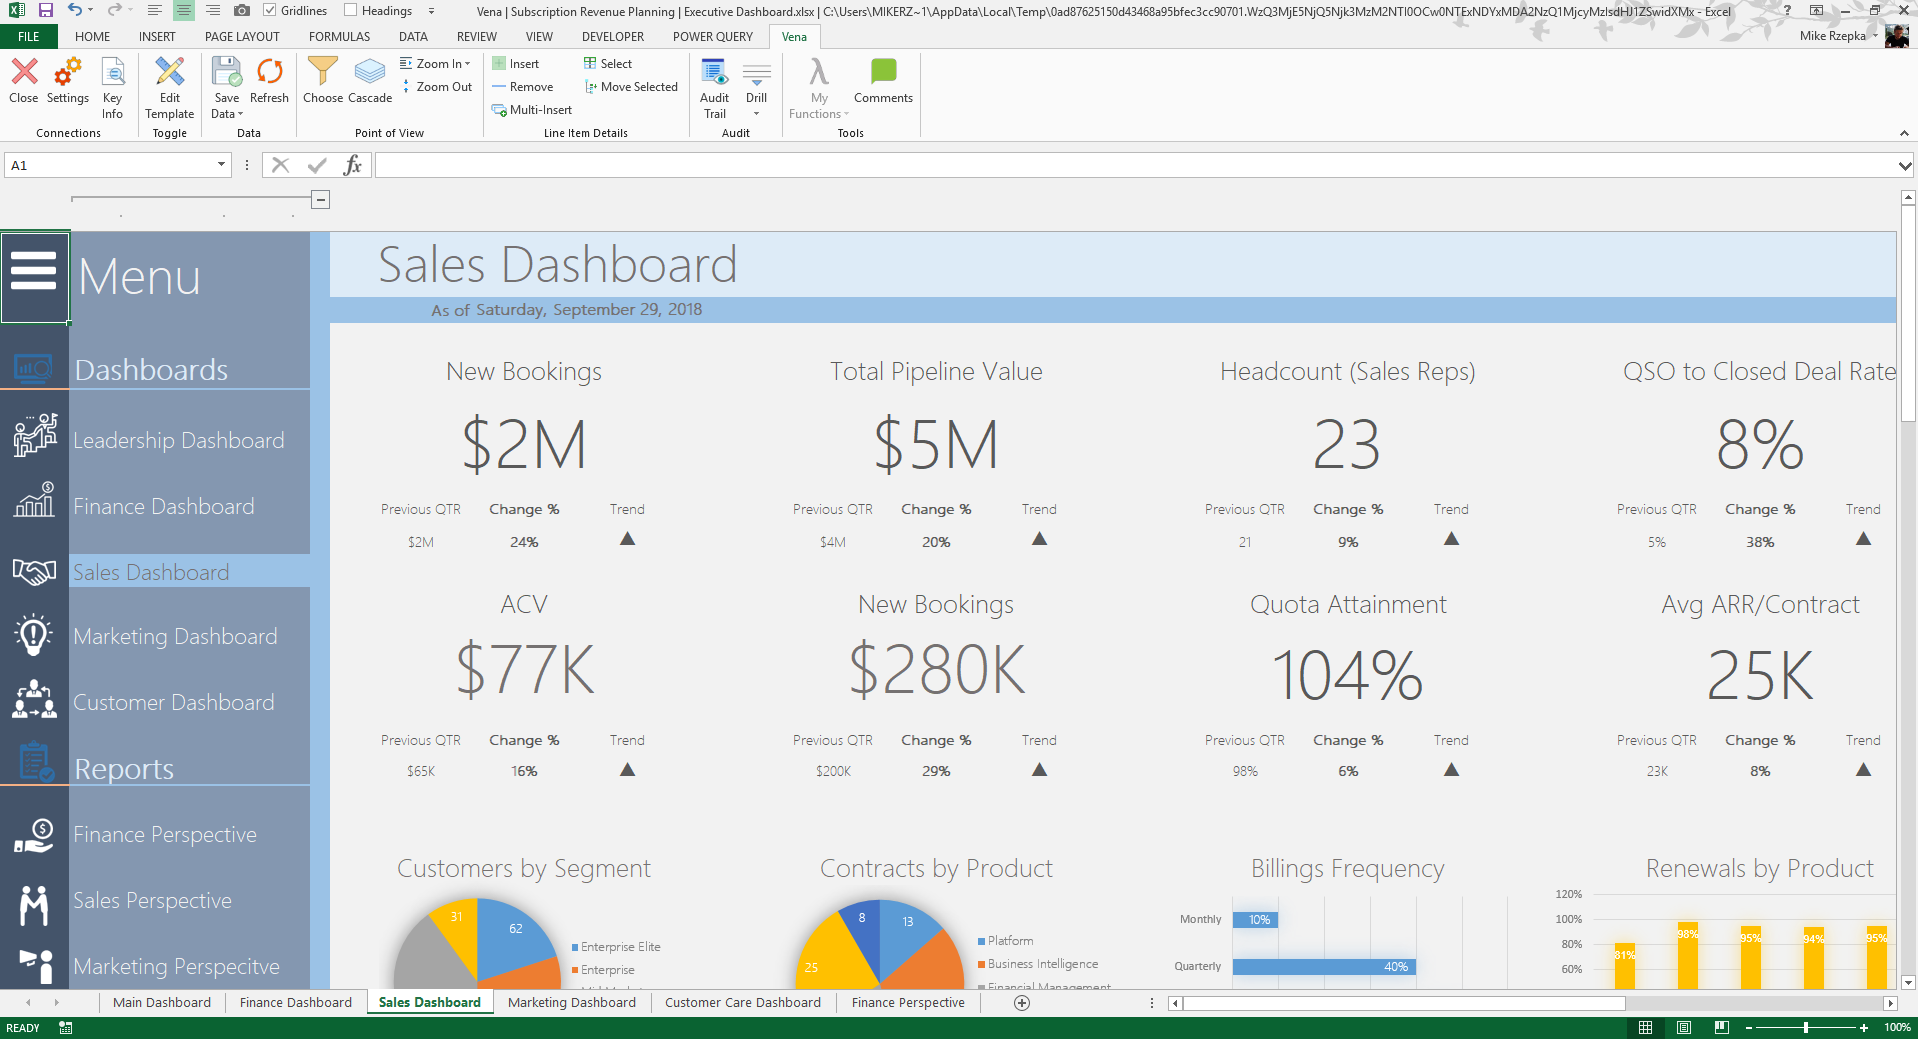 Excel for FP&A - Sales Dashboard Report